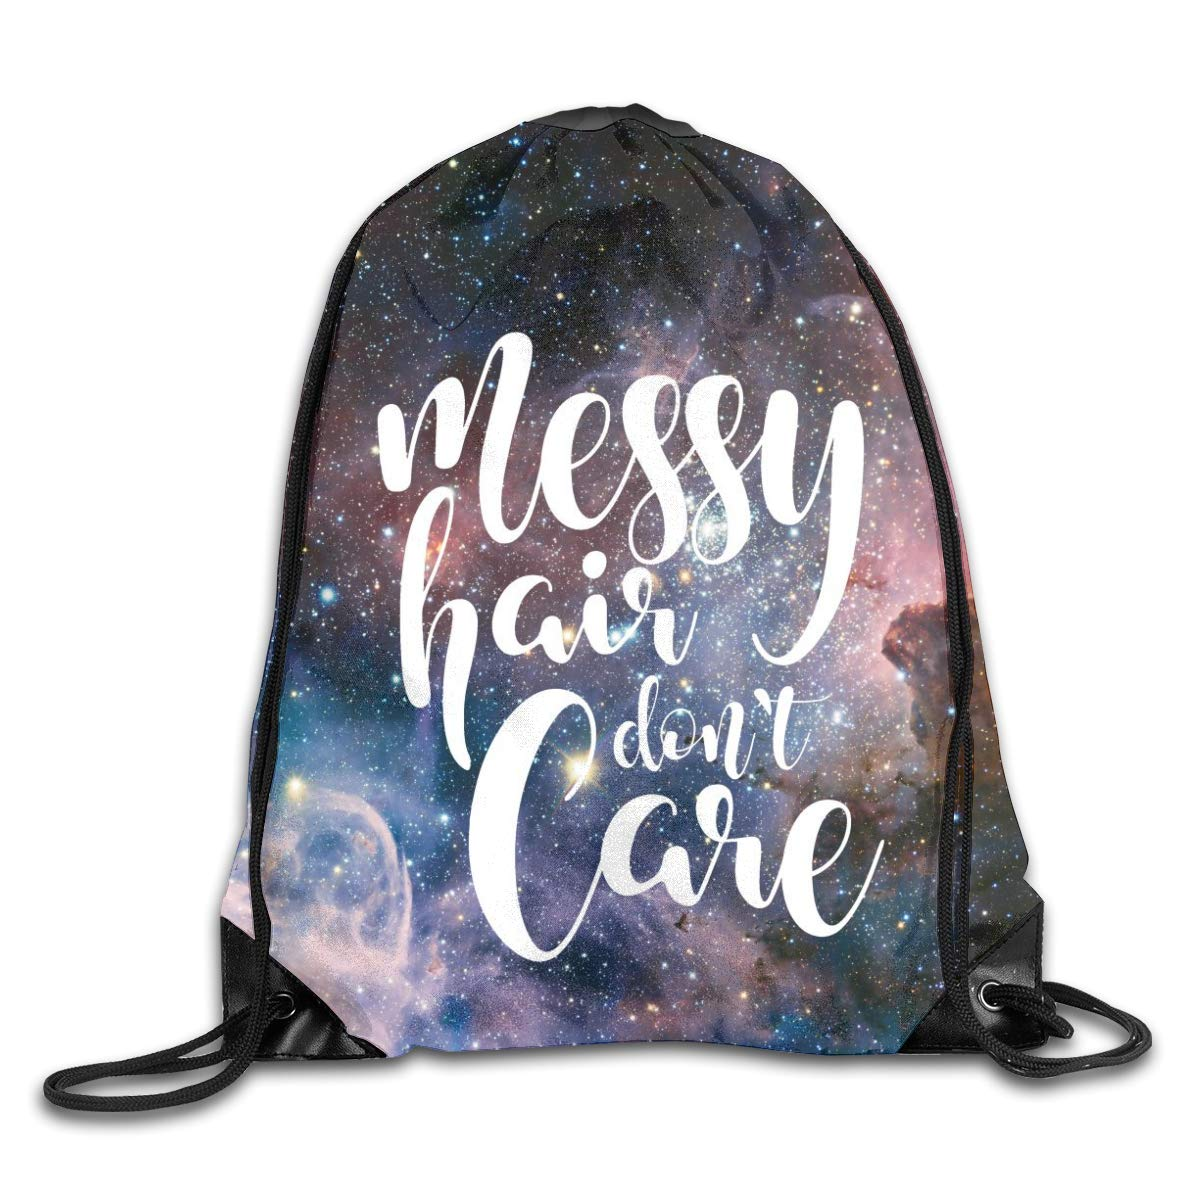 Private Bath Customi Drawstring Bags Messy Hair Don't Care Unisex Gym Drawstring Shoulder Bag Backpack Travel School Rucksack String Bags